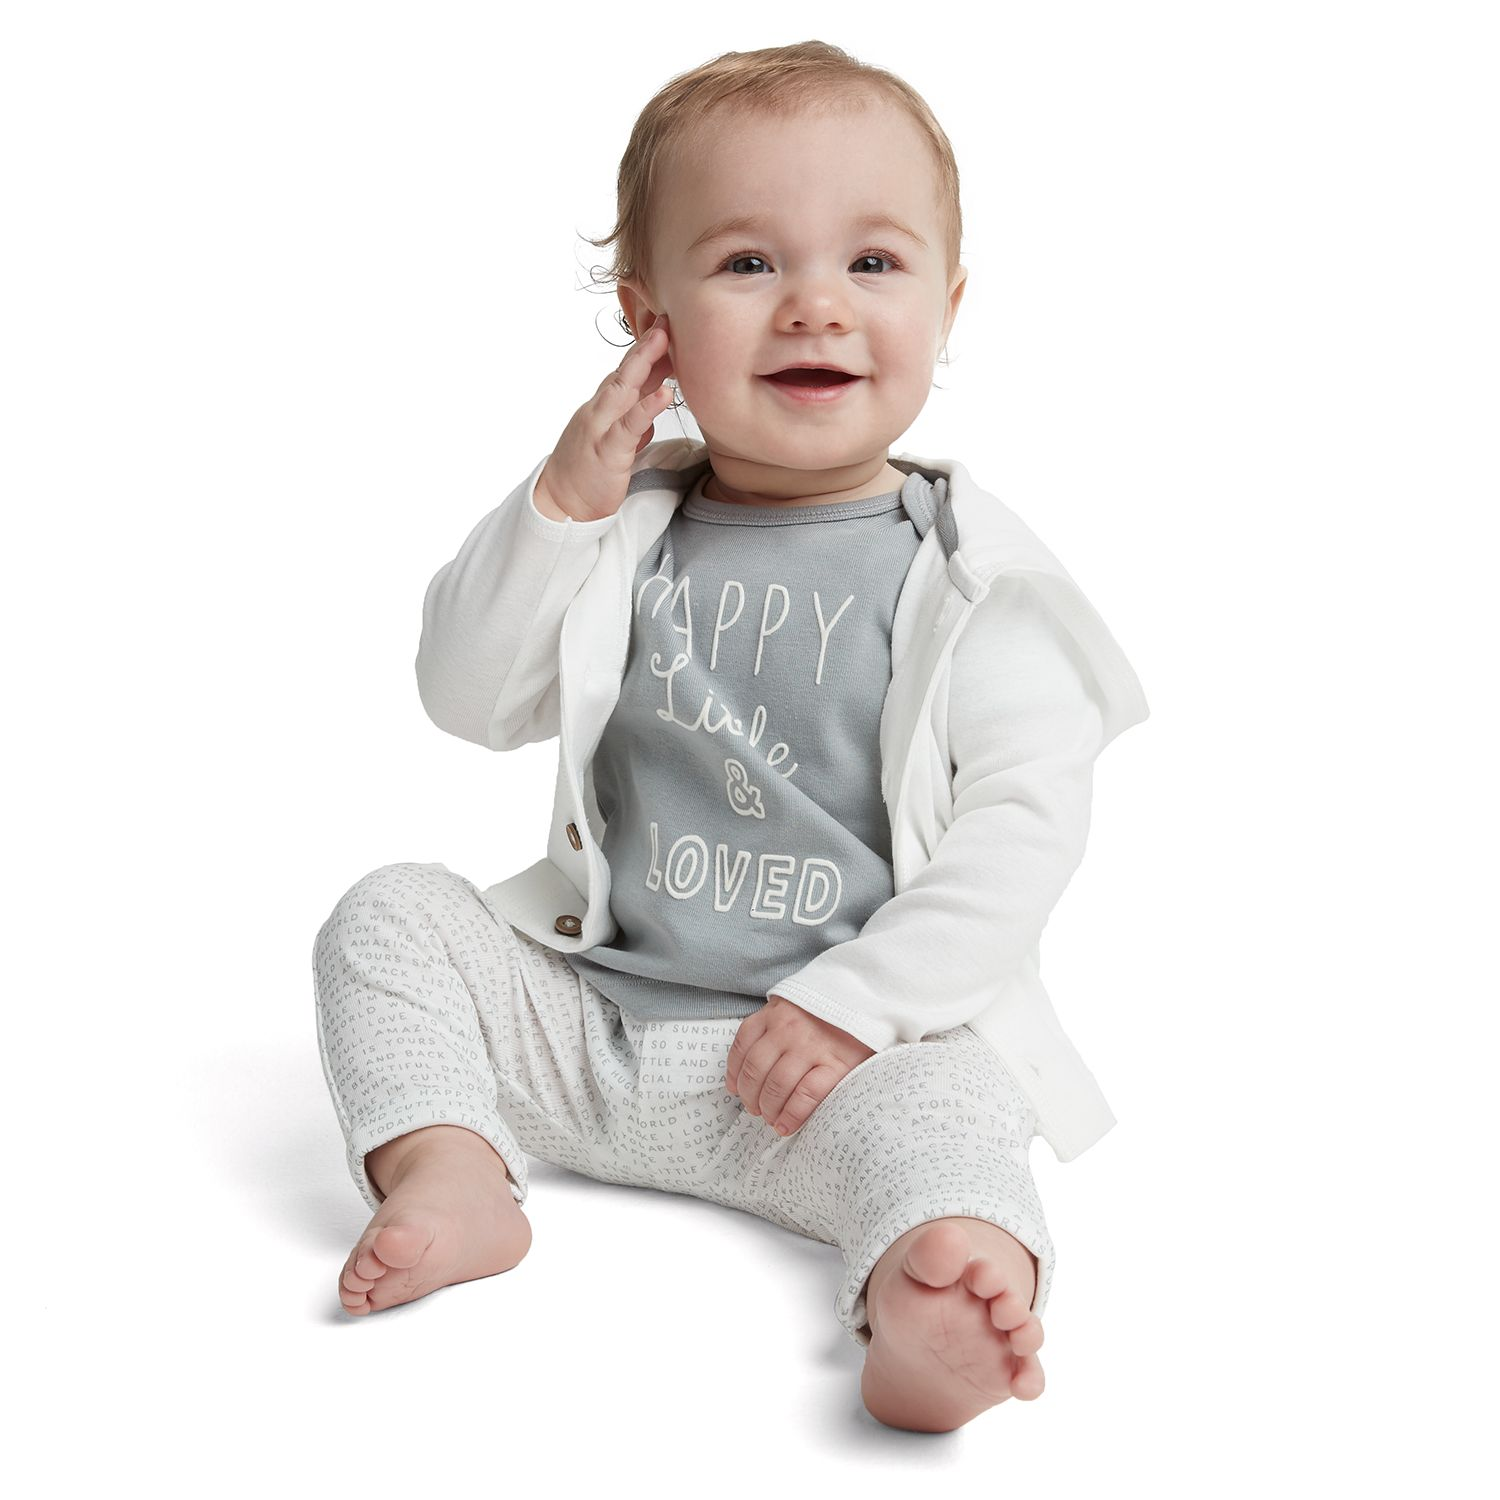 d498b5a2ec06 Baby Boy Outfits   Clothing Sets